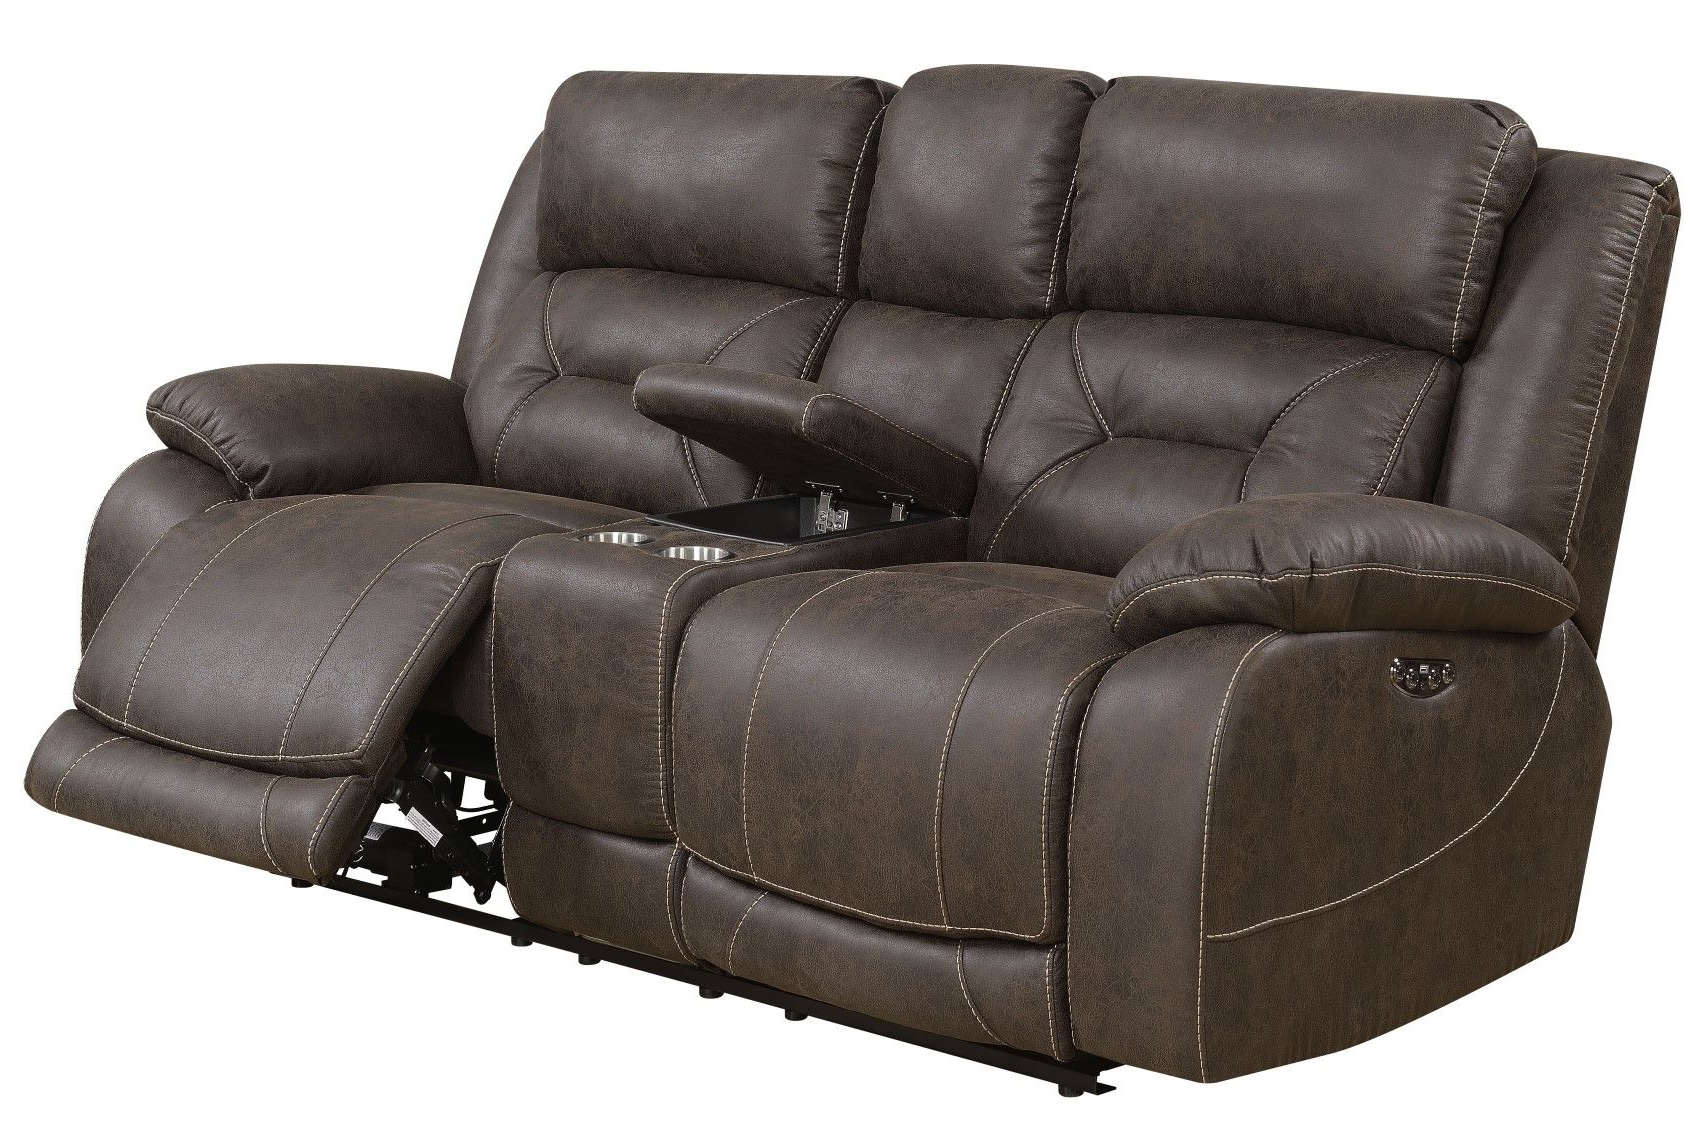 Best And Newest Aria Power Recliner Sofa Set With Power Head Rest In With Regard To Expedition Brown Power Reclining Sofas (View 2 of 20)